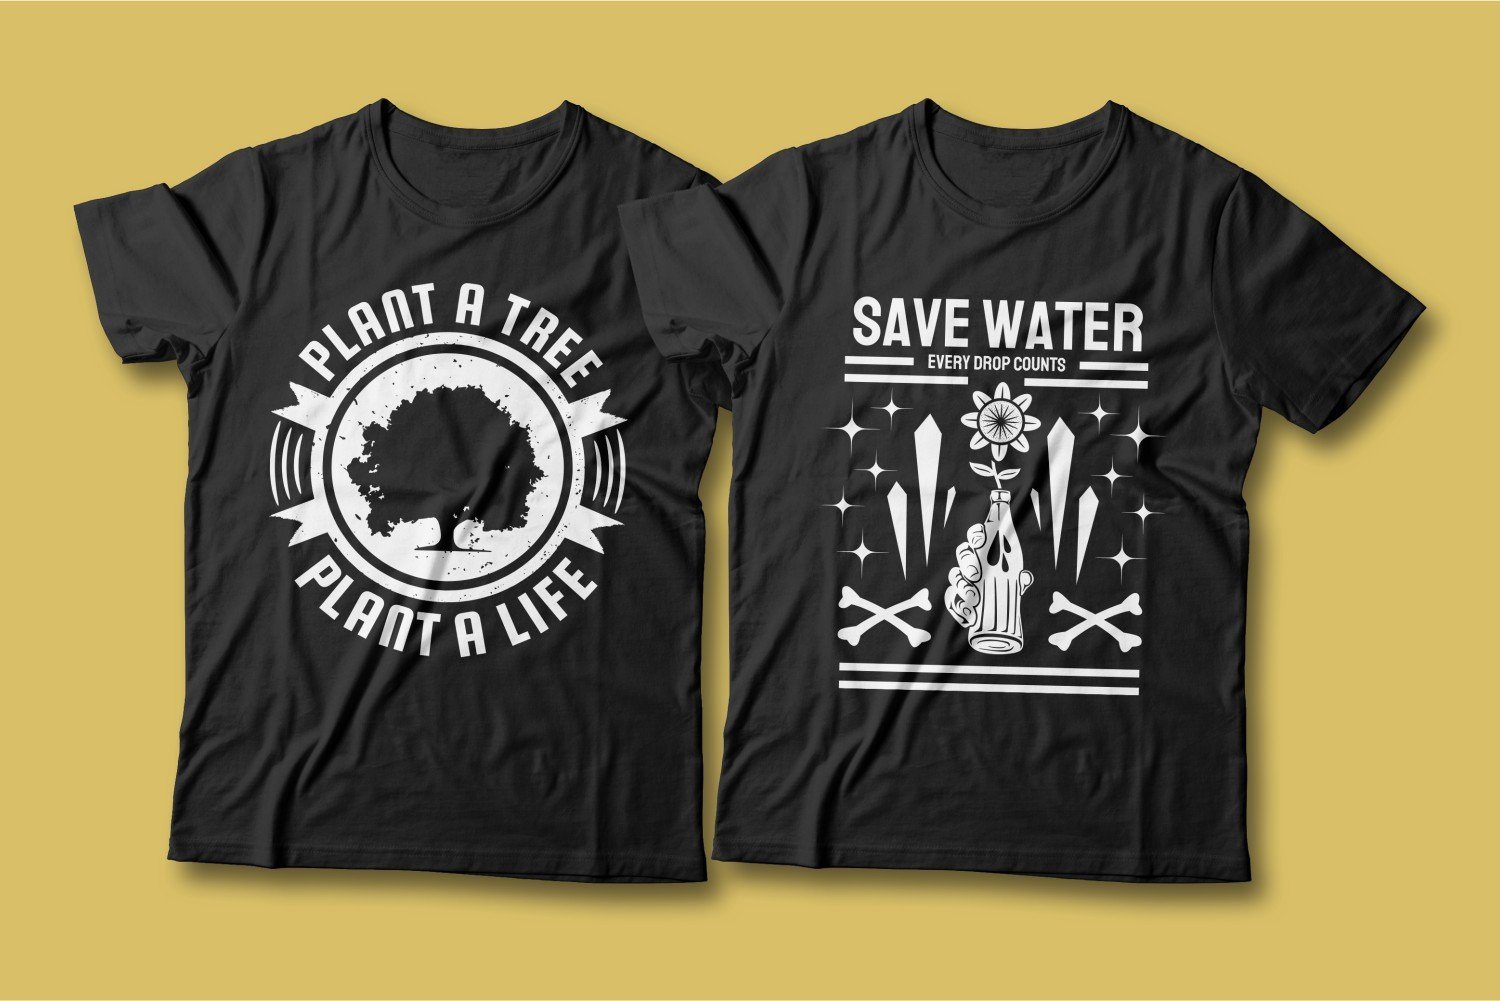 Two black T-shirts with an inscription and a picture about water conservation.